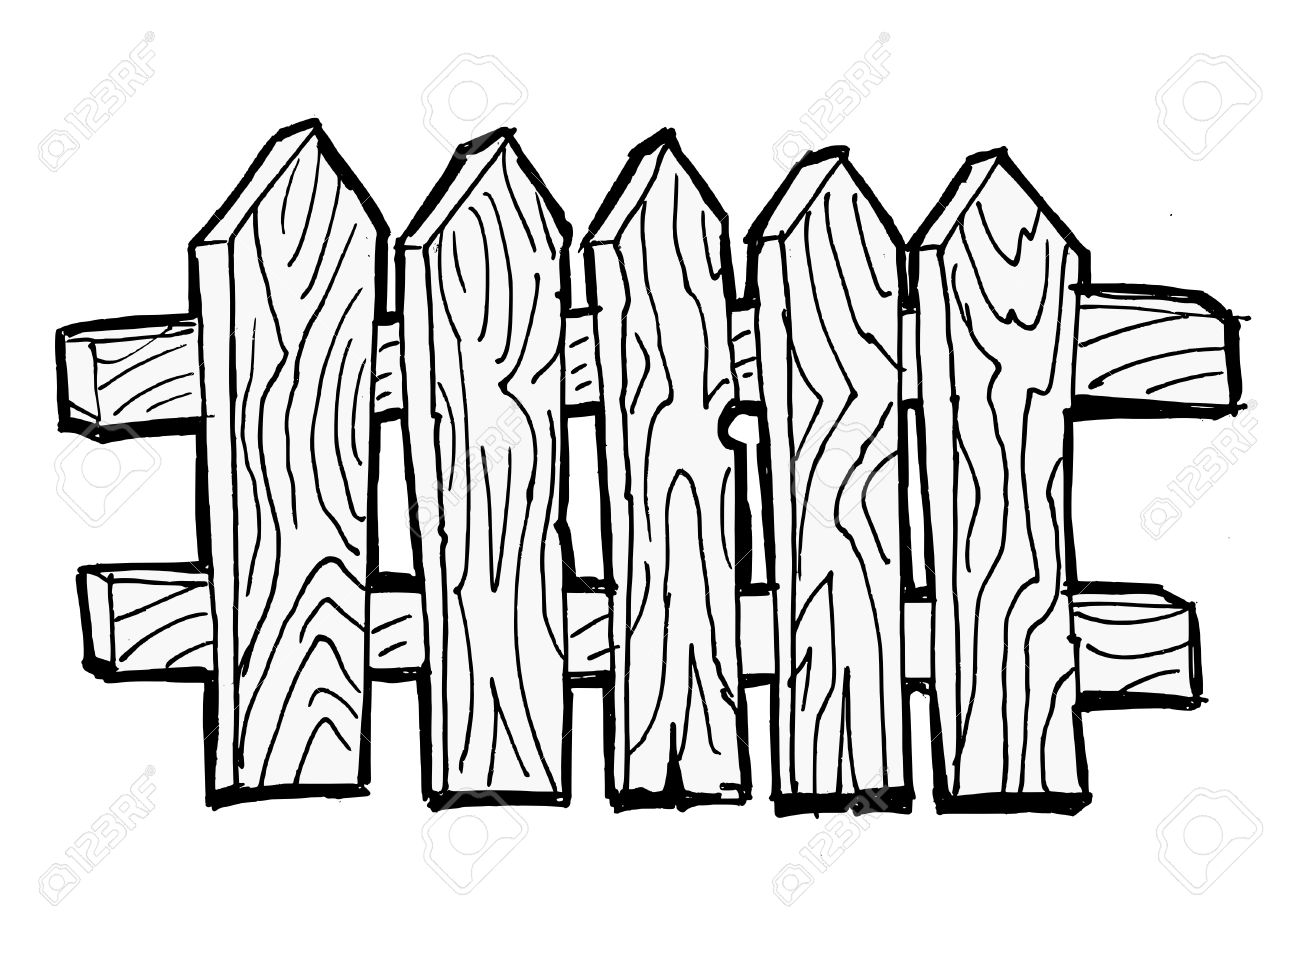 Wooden Fence Cliparts